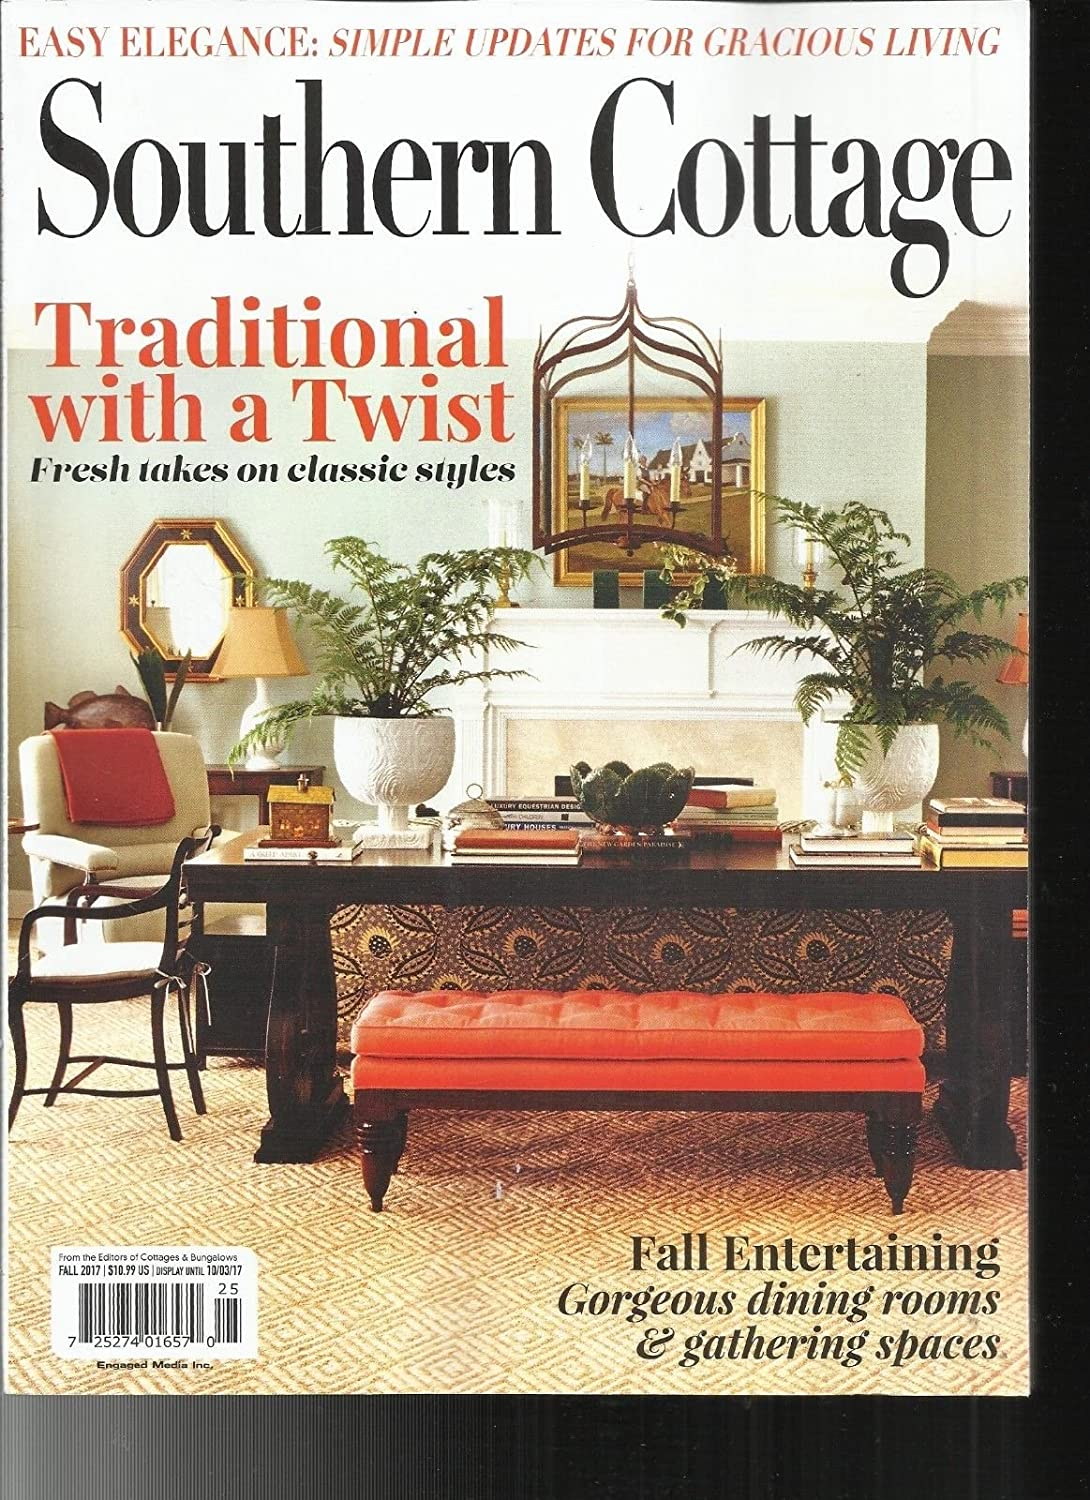 SOUTHERN COTTAGE MAGAZINE FALL, 2017 TRADITIONAL WITH A TWIST s3457